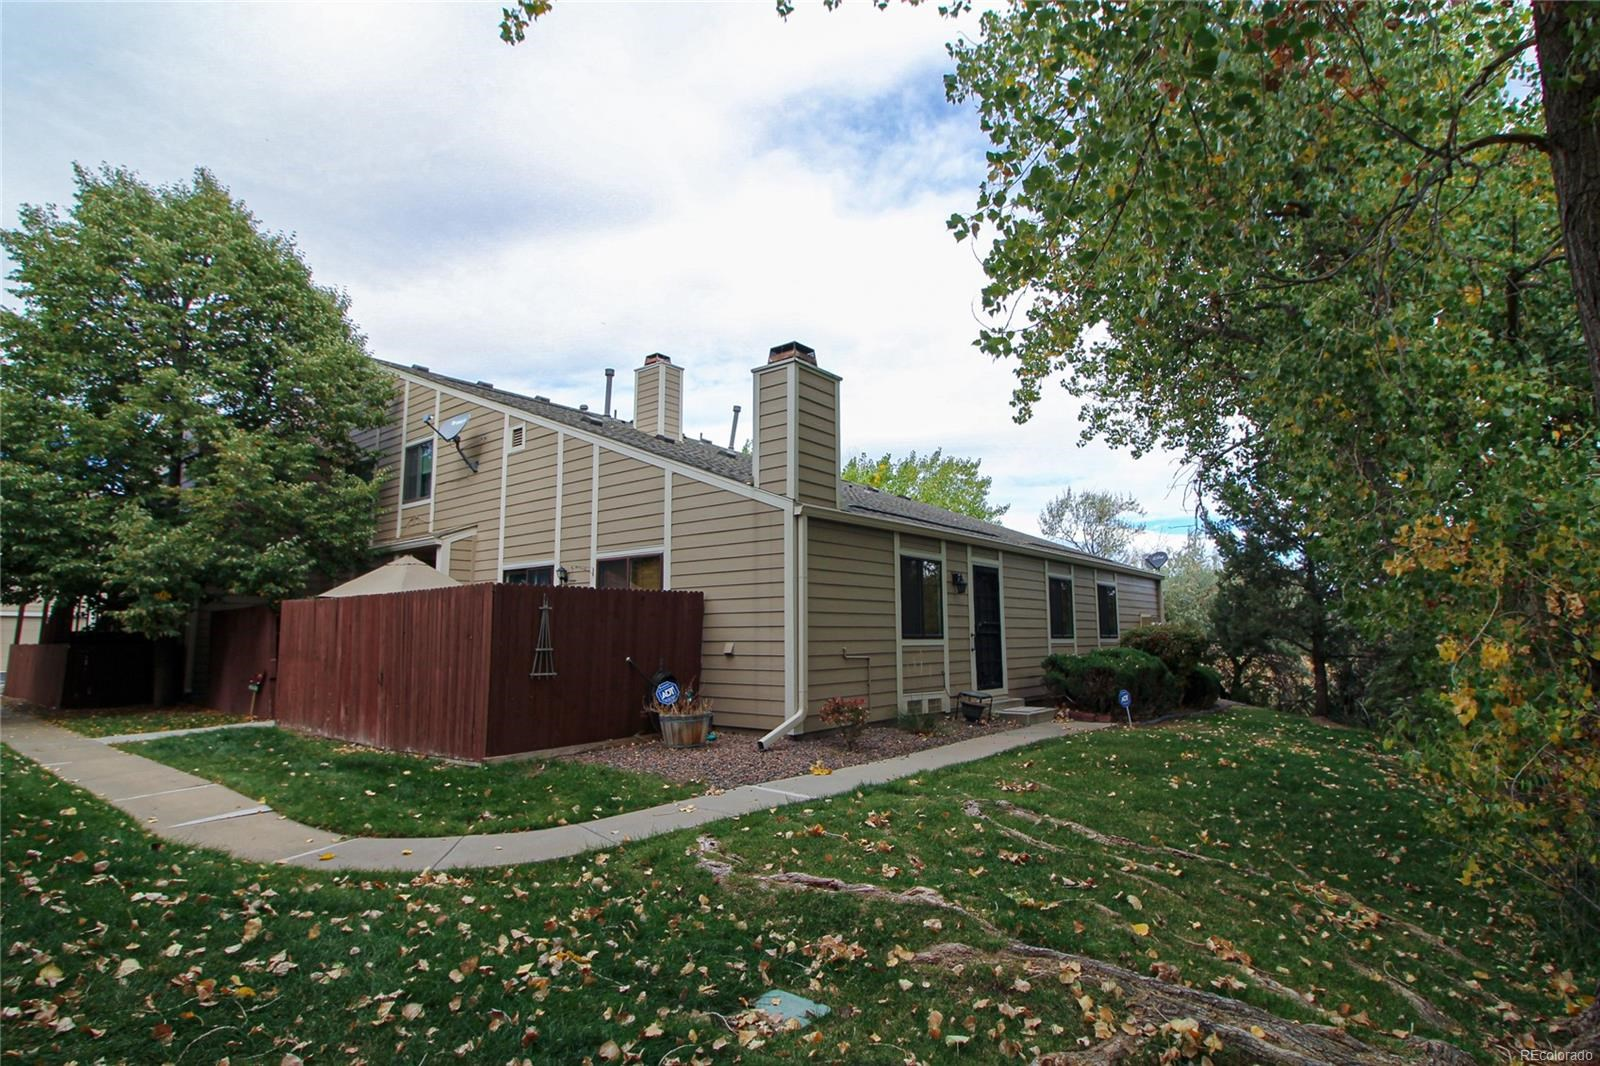 MLS# 5062713 - 1 - 18258 W 58th Place #1, Golden, CO 80403